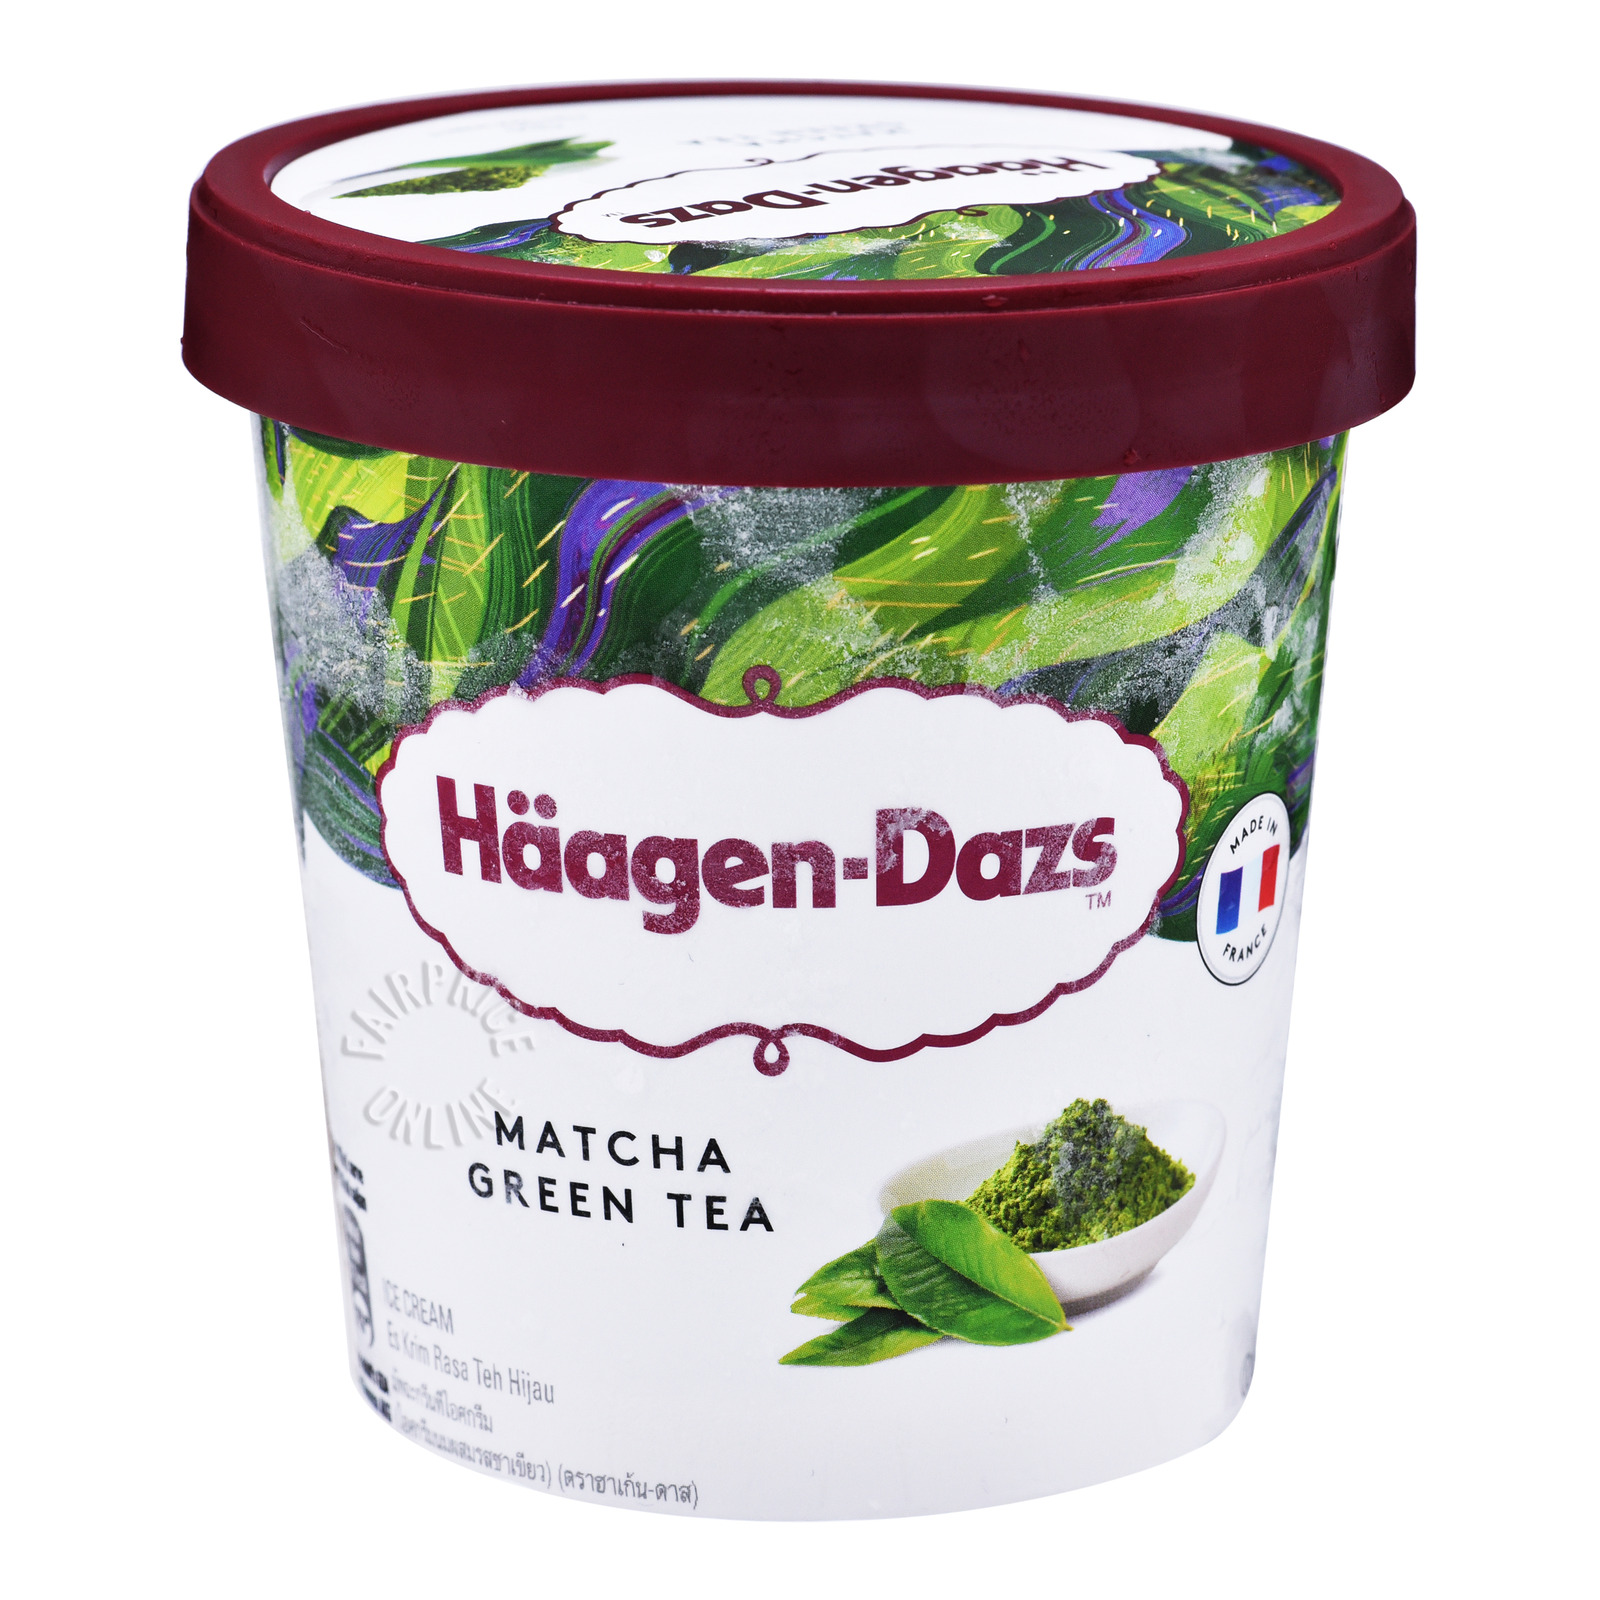 Haagen-Dazs Ice Cream - Matcha Green Tea